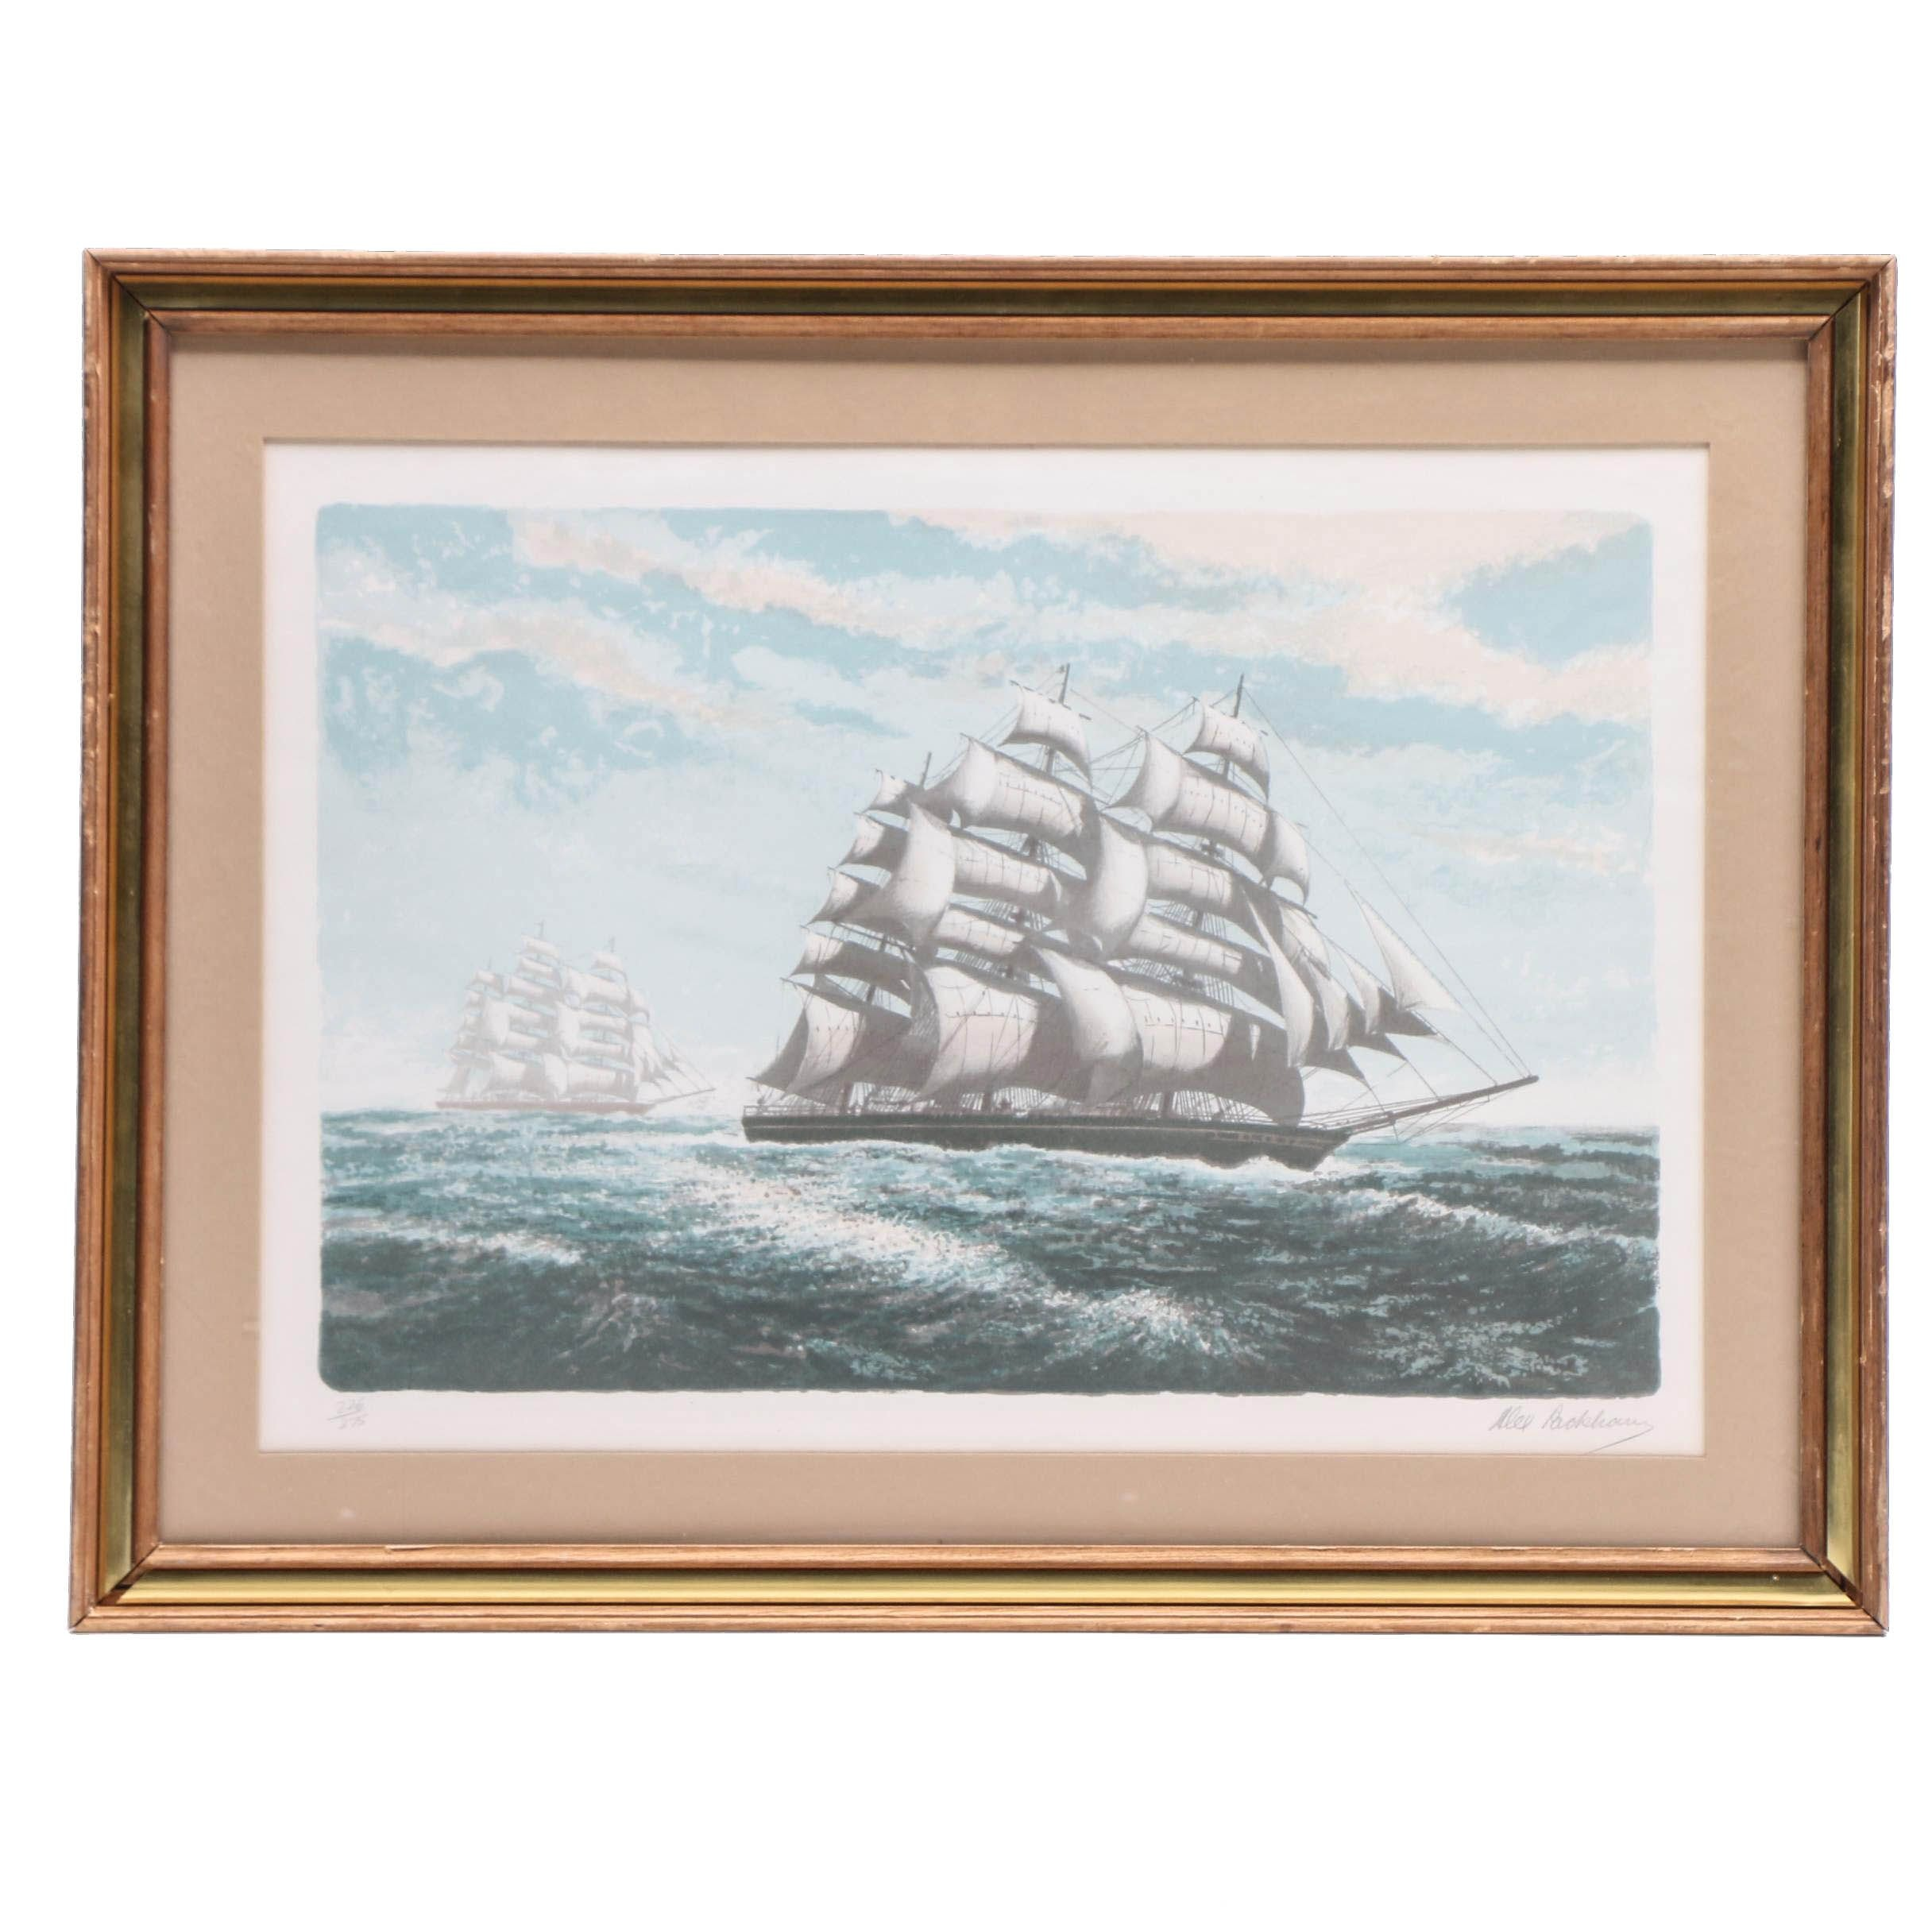 Alexander Packham Limited Edition Maritime Color Lithograph